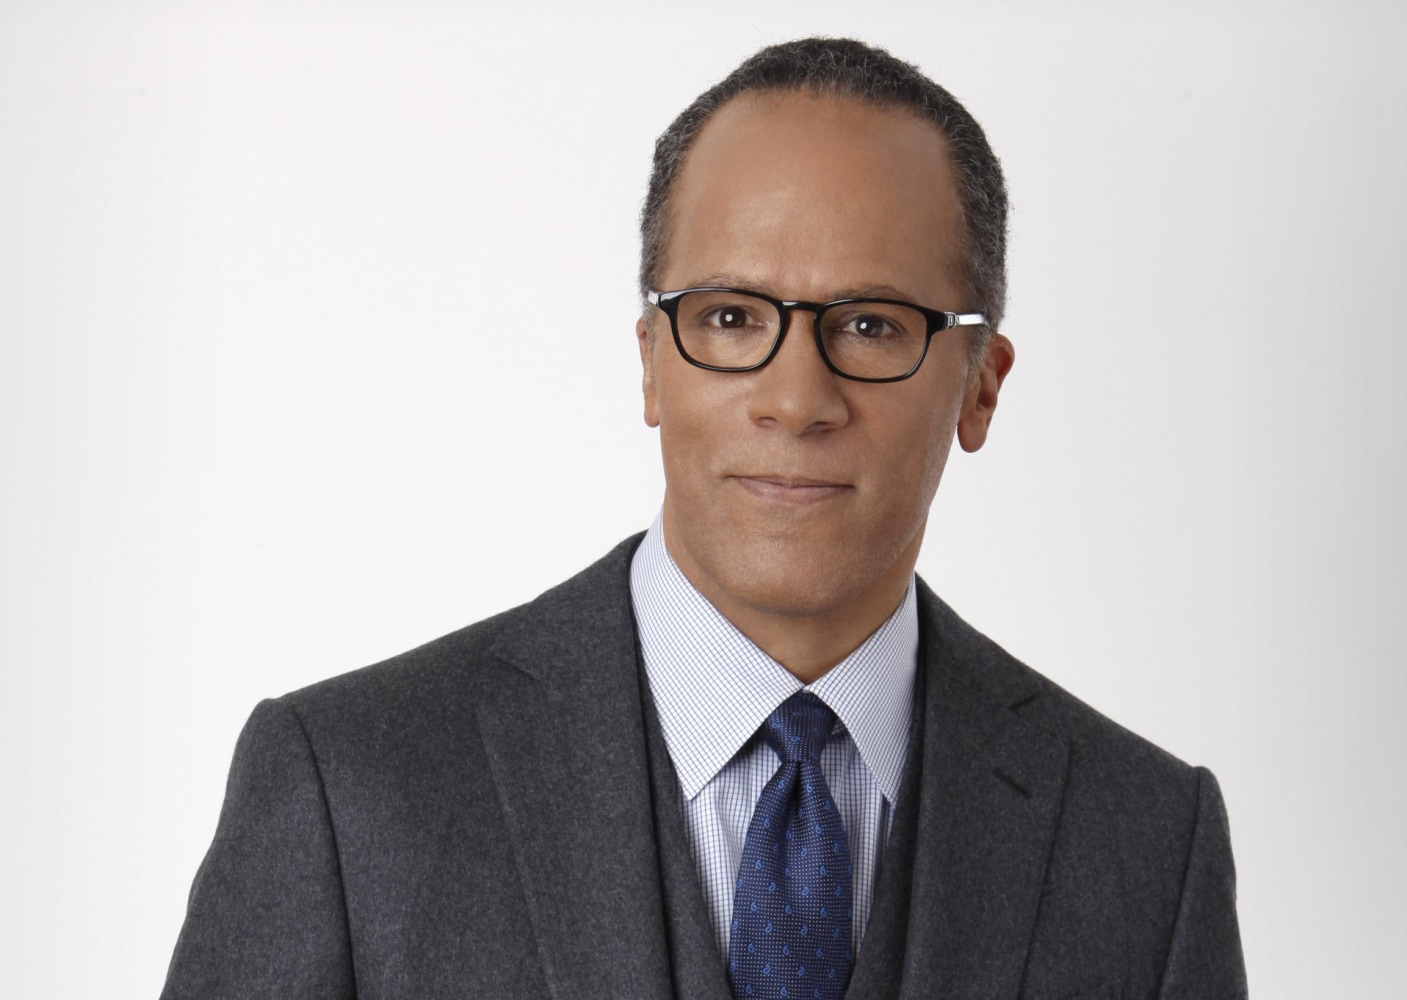 Lester Holt Named Anchor of 'NBC Nightly News' - NBC News